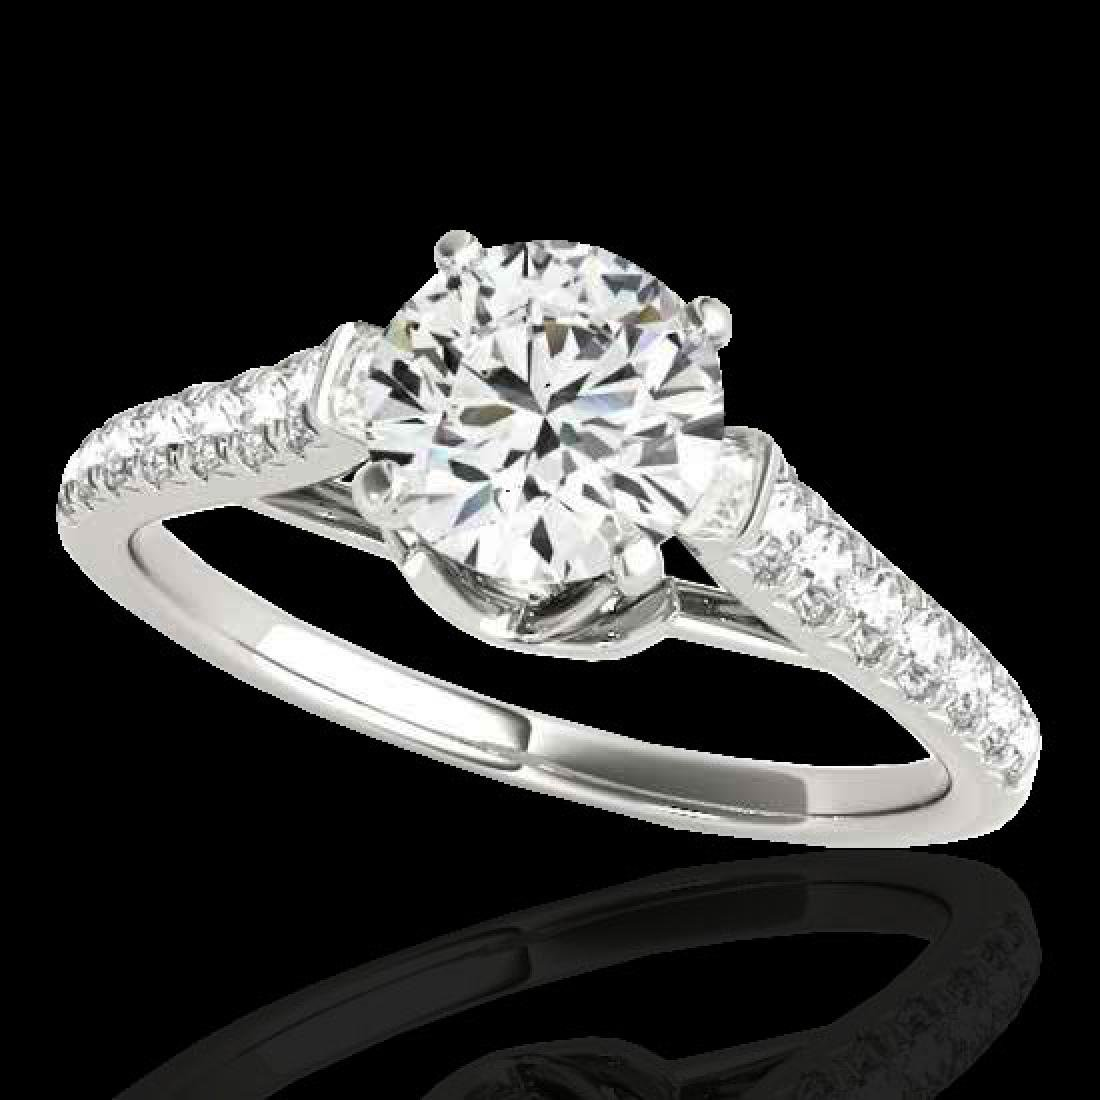 1.46 CTW H-SI/I Certified Diamond Solitaire Ring 10K